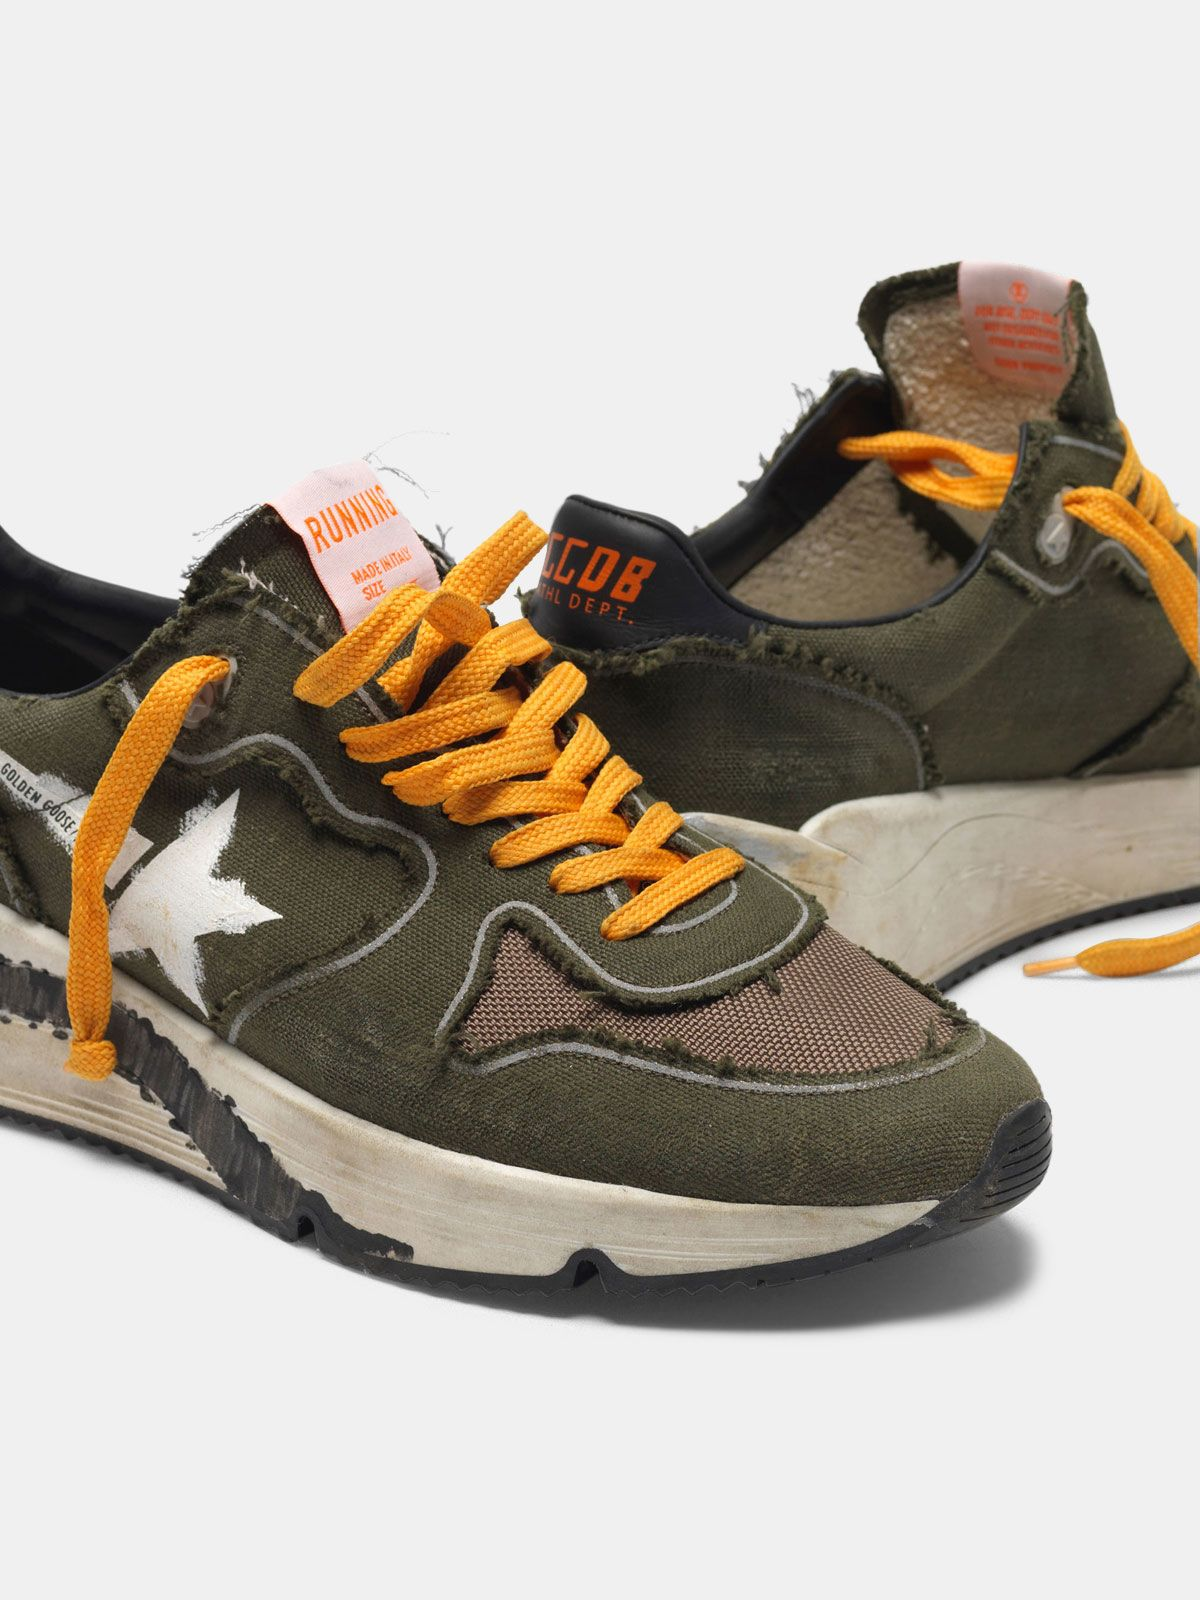 Golden Goose - Running Sole sneakers in canvas with raw edges in